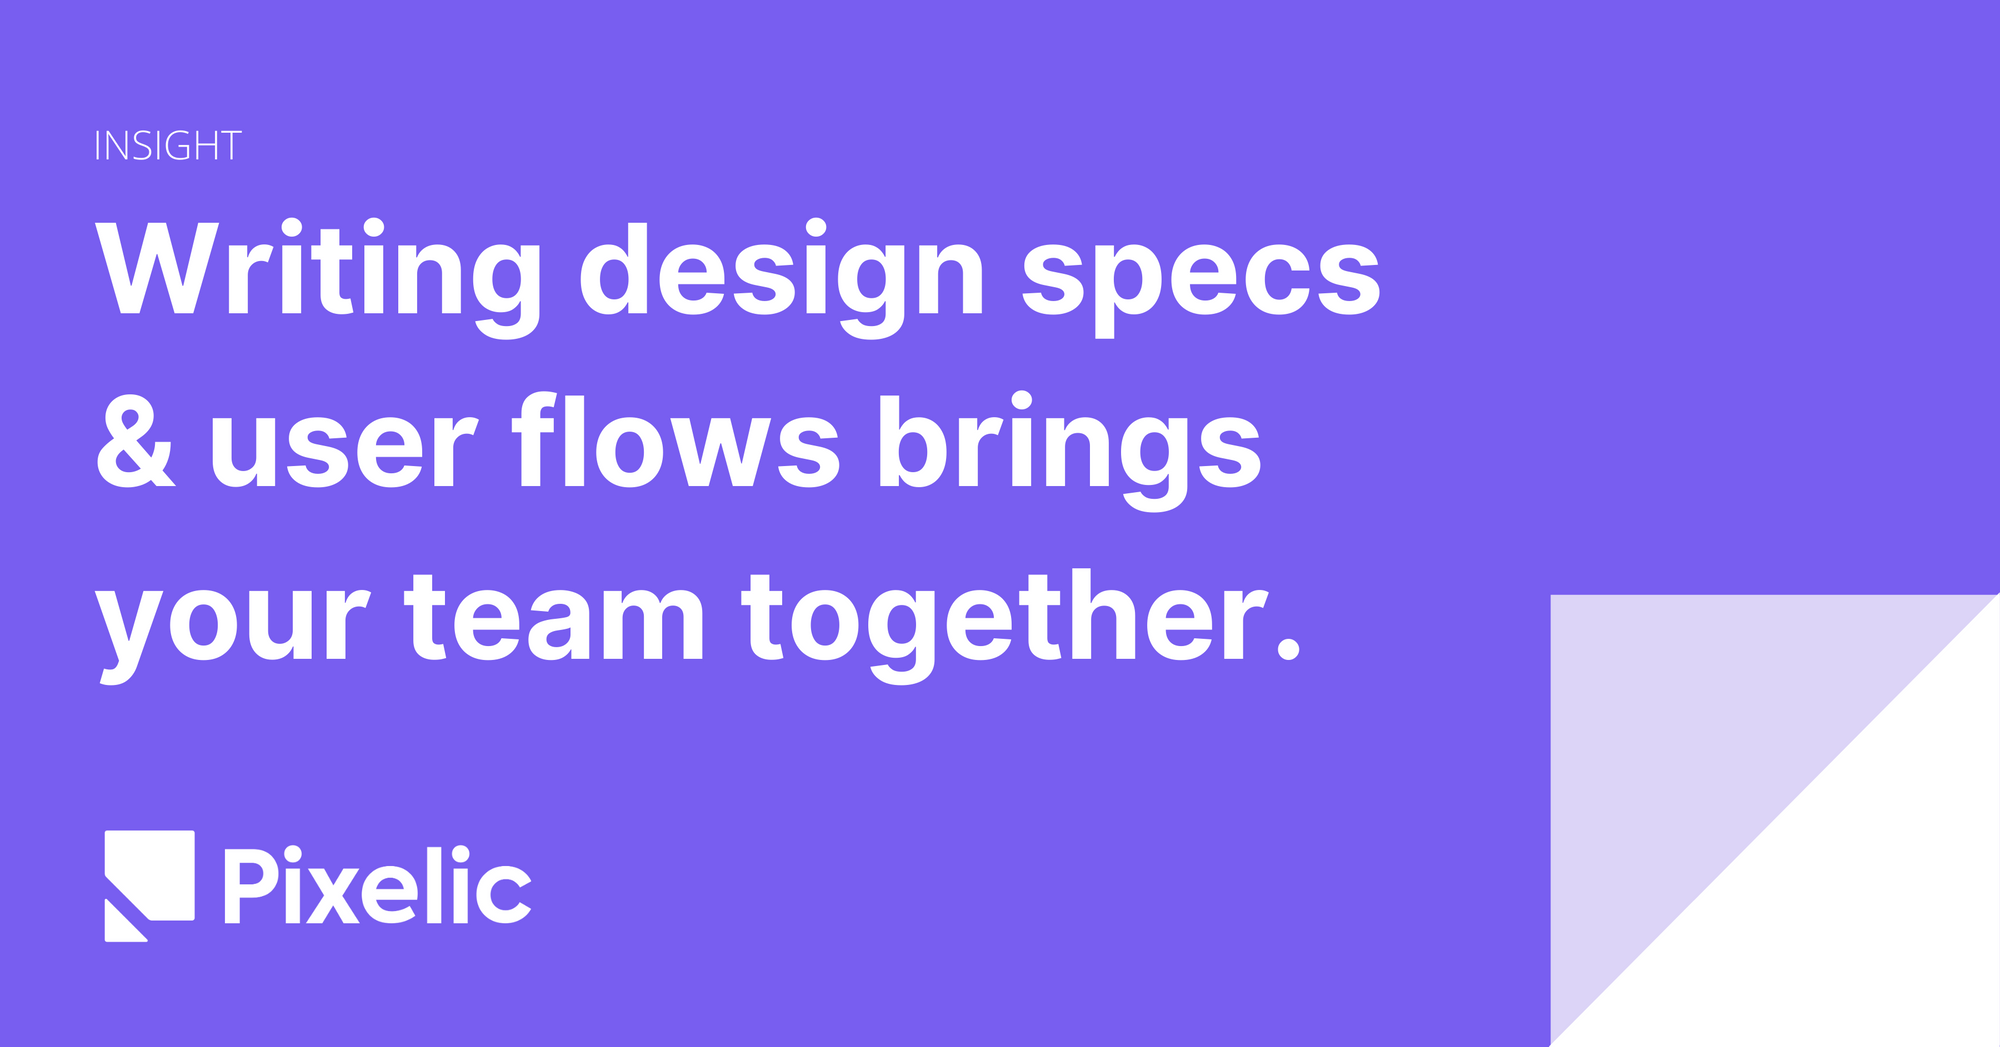 Accelerating UX design process through design specs and user flows